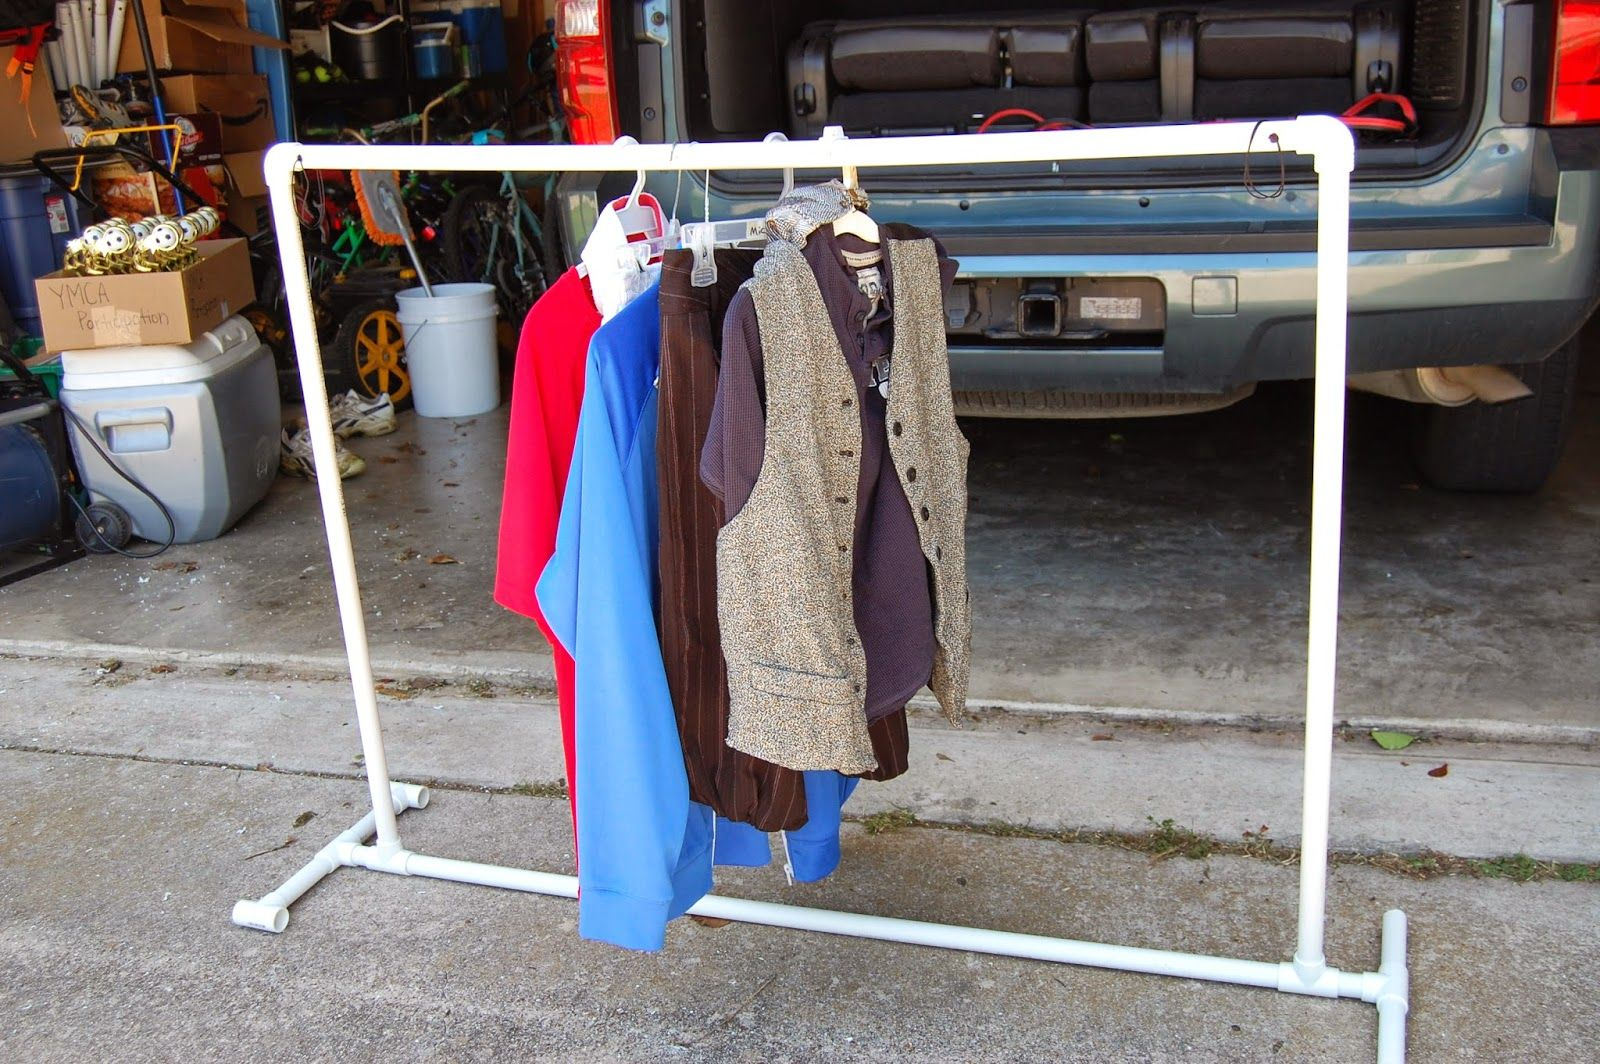 Diy Pvc Pipe Portable Clothes Rack Crafts And Projects Diy